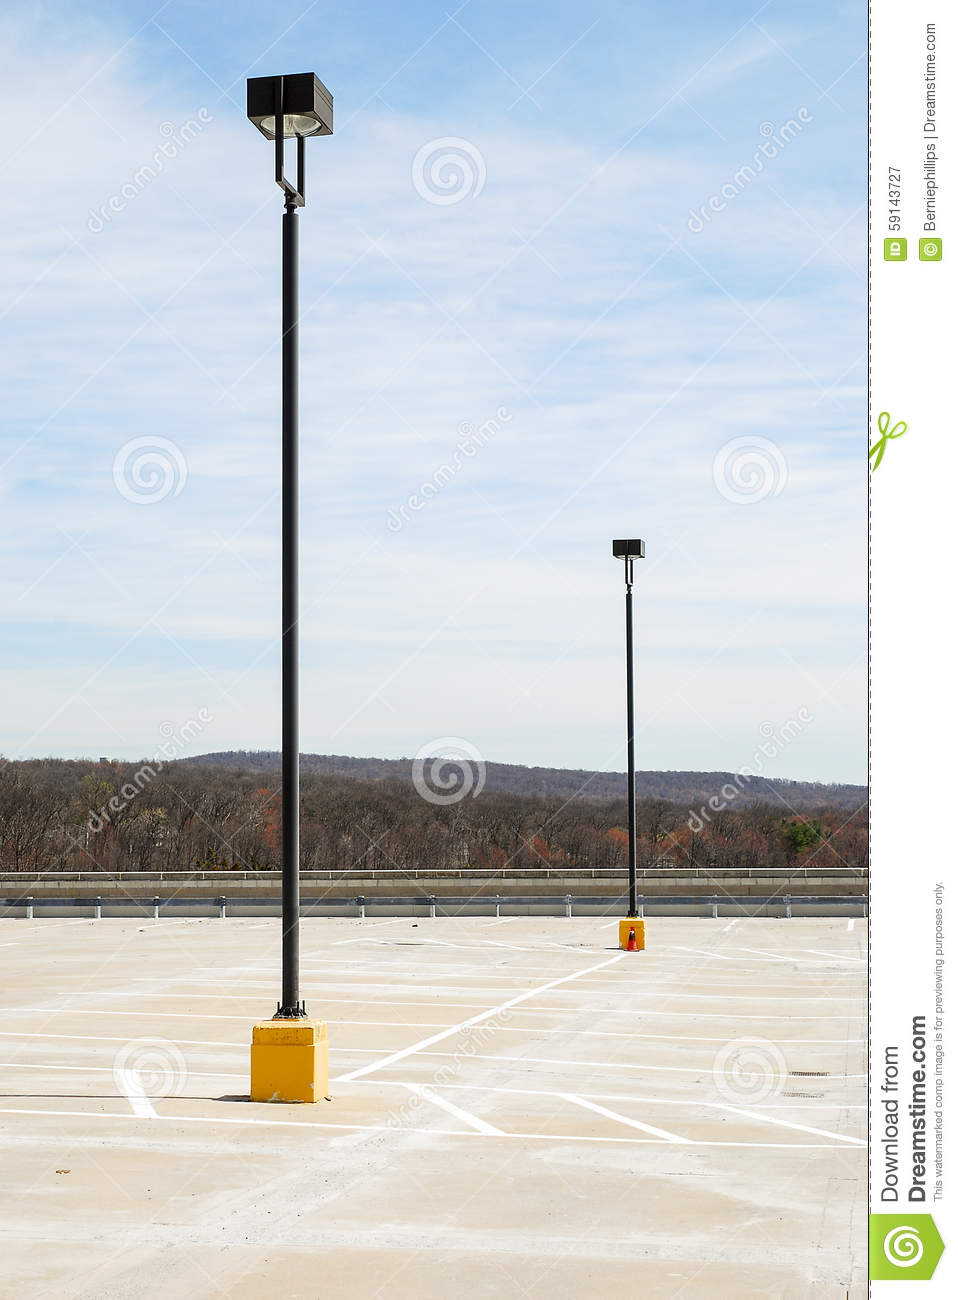 Parking Lot Lights Stock Image Image Of Roof Lamps 59143727